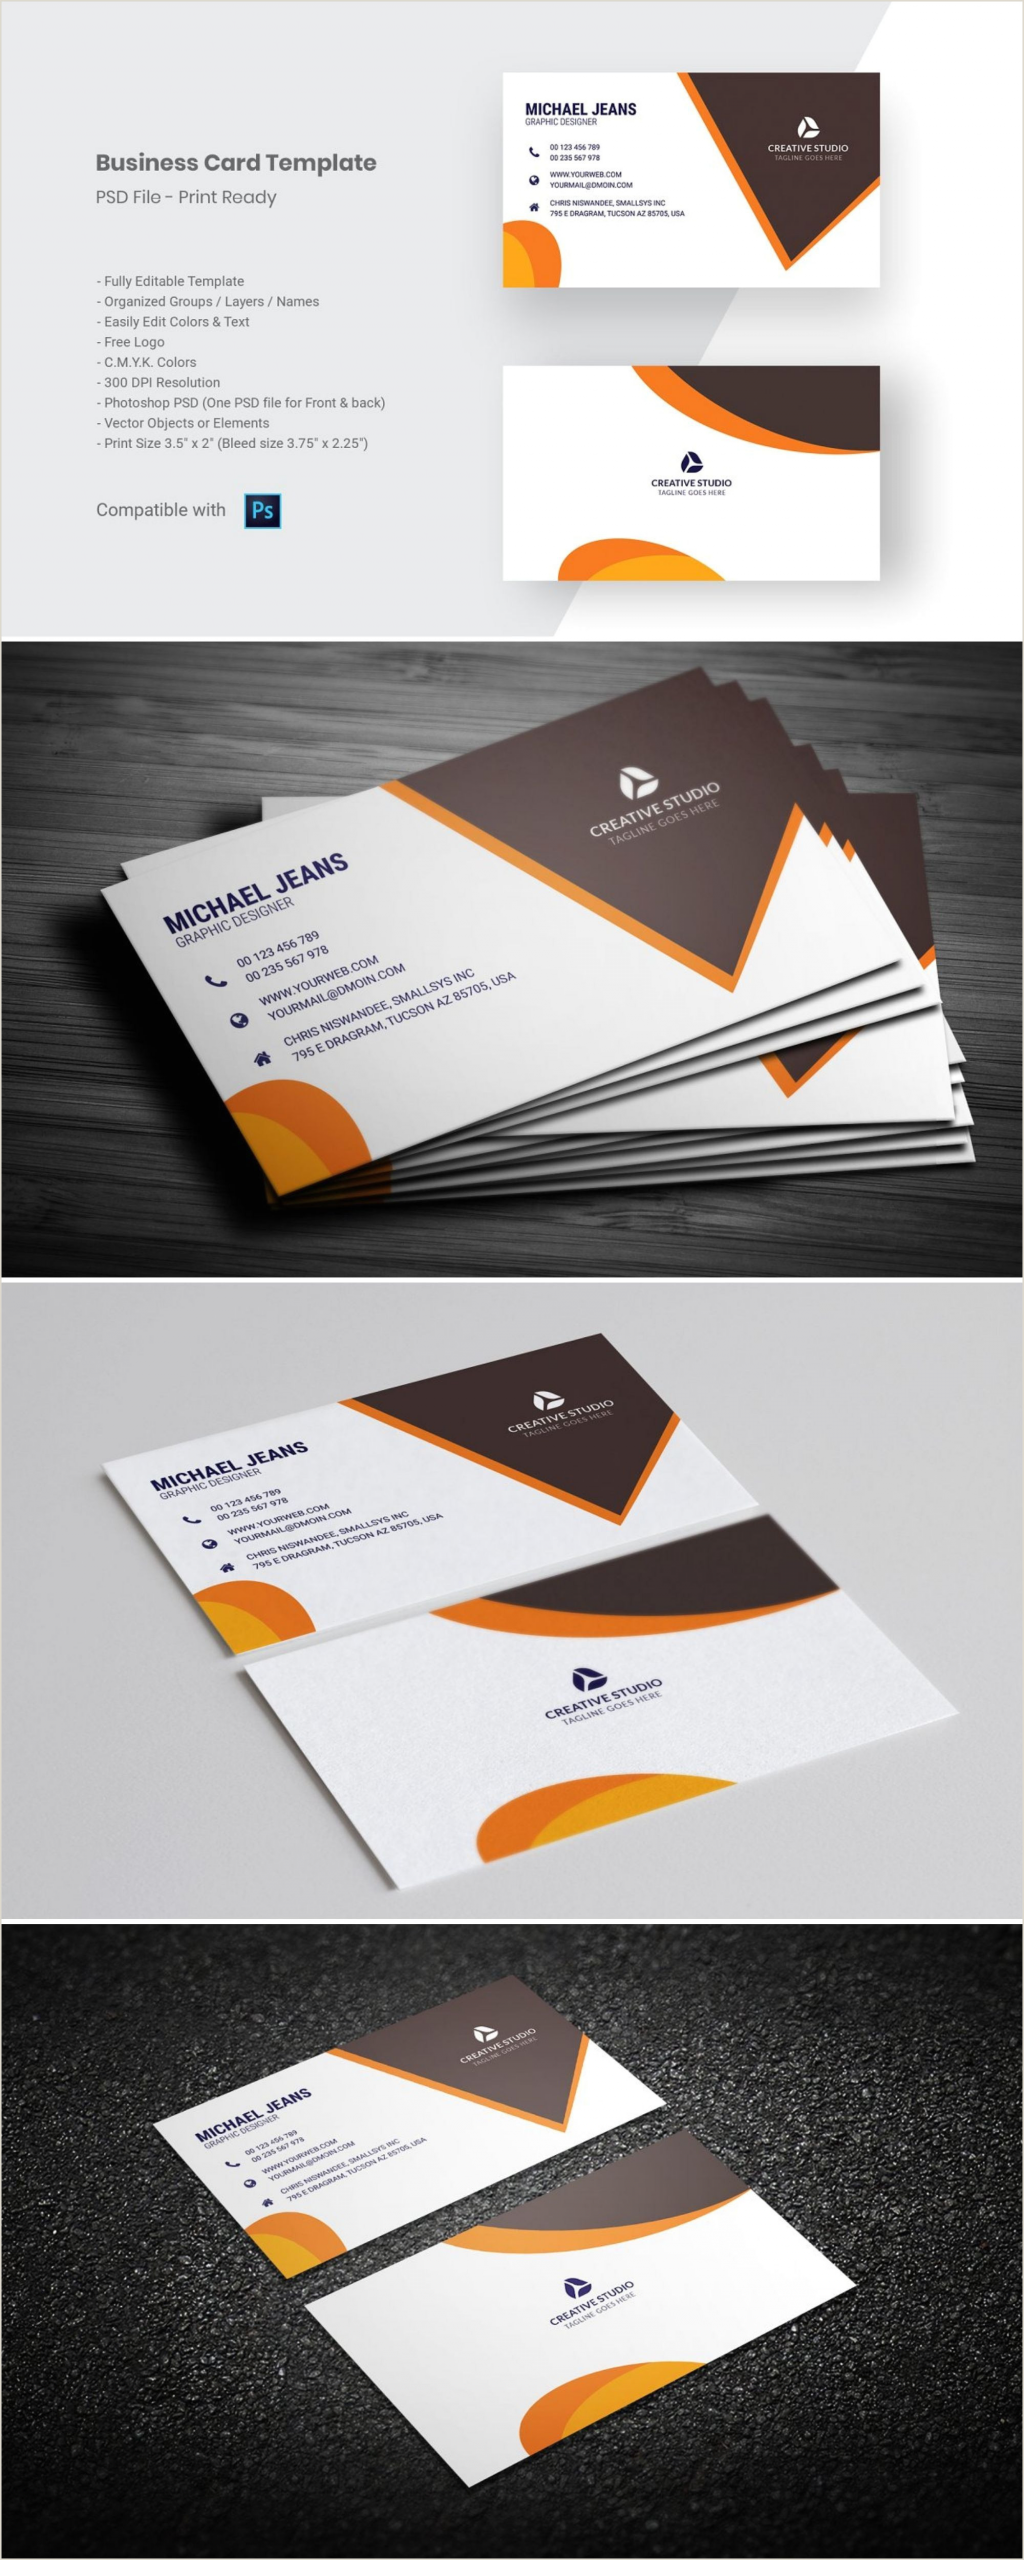 Business Cards Backgrounds Modern Business Card Template